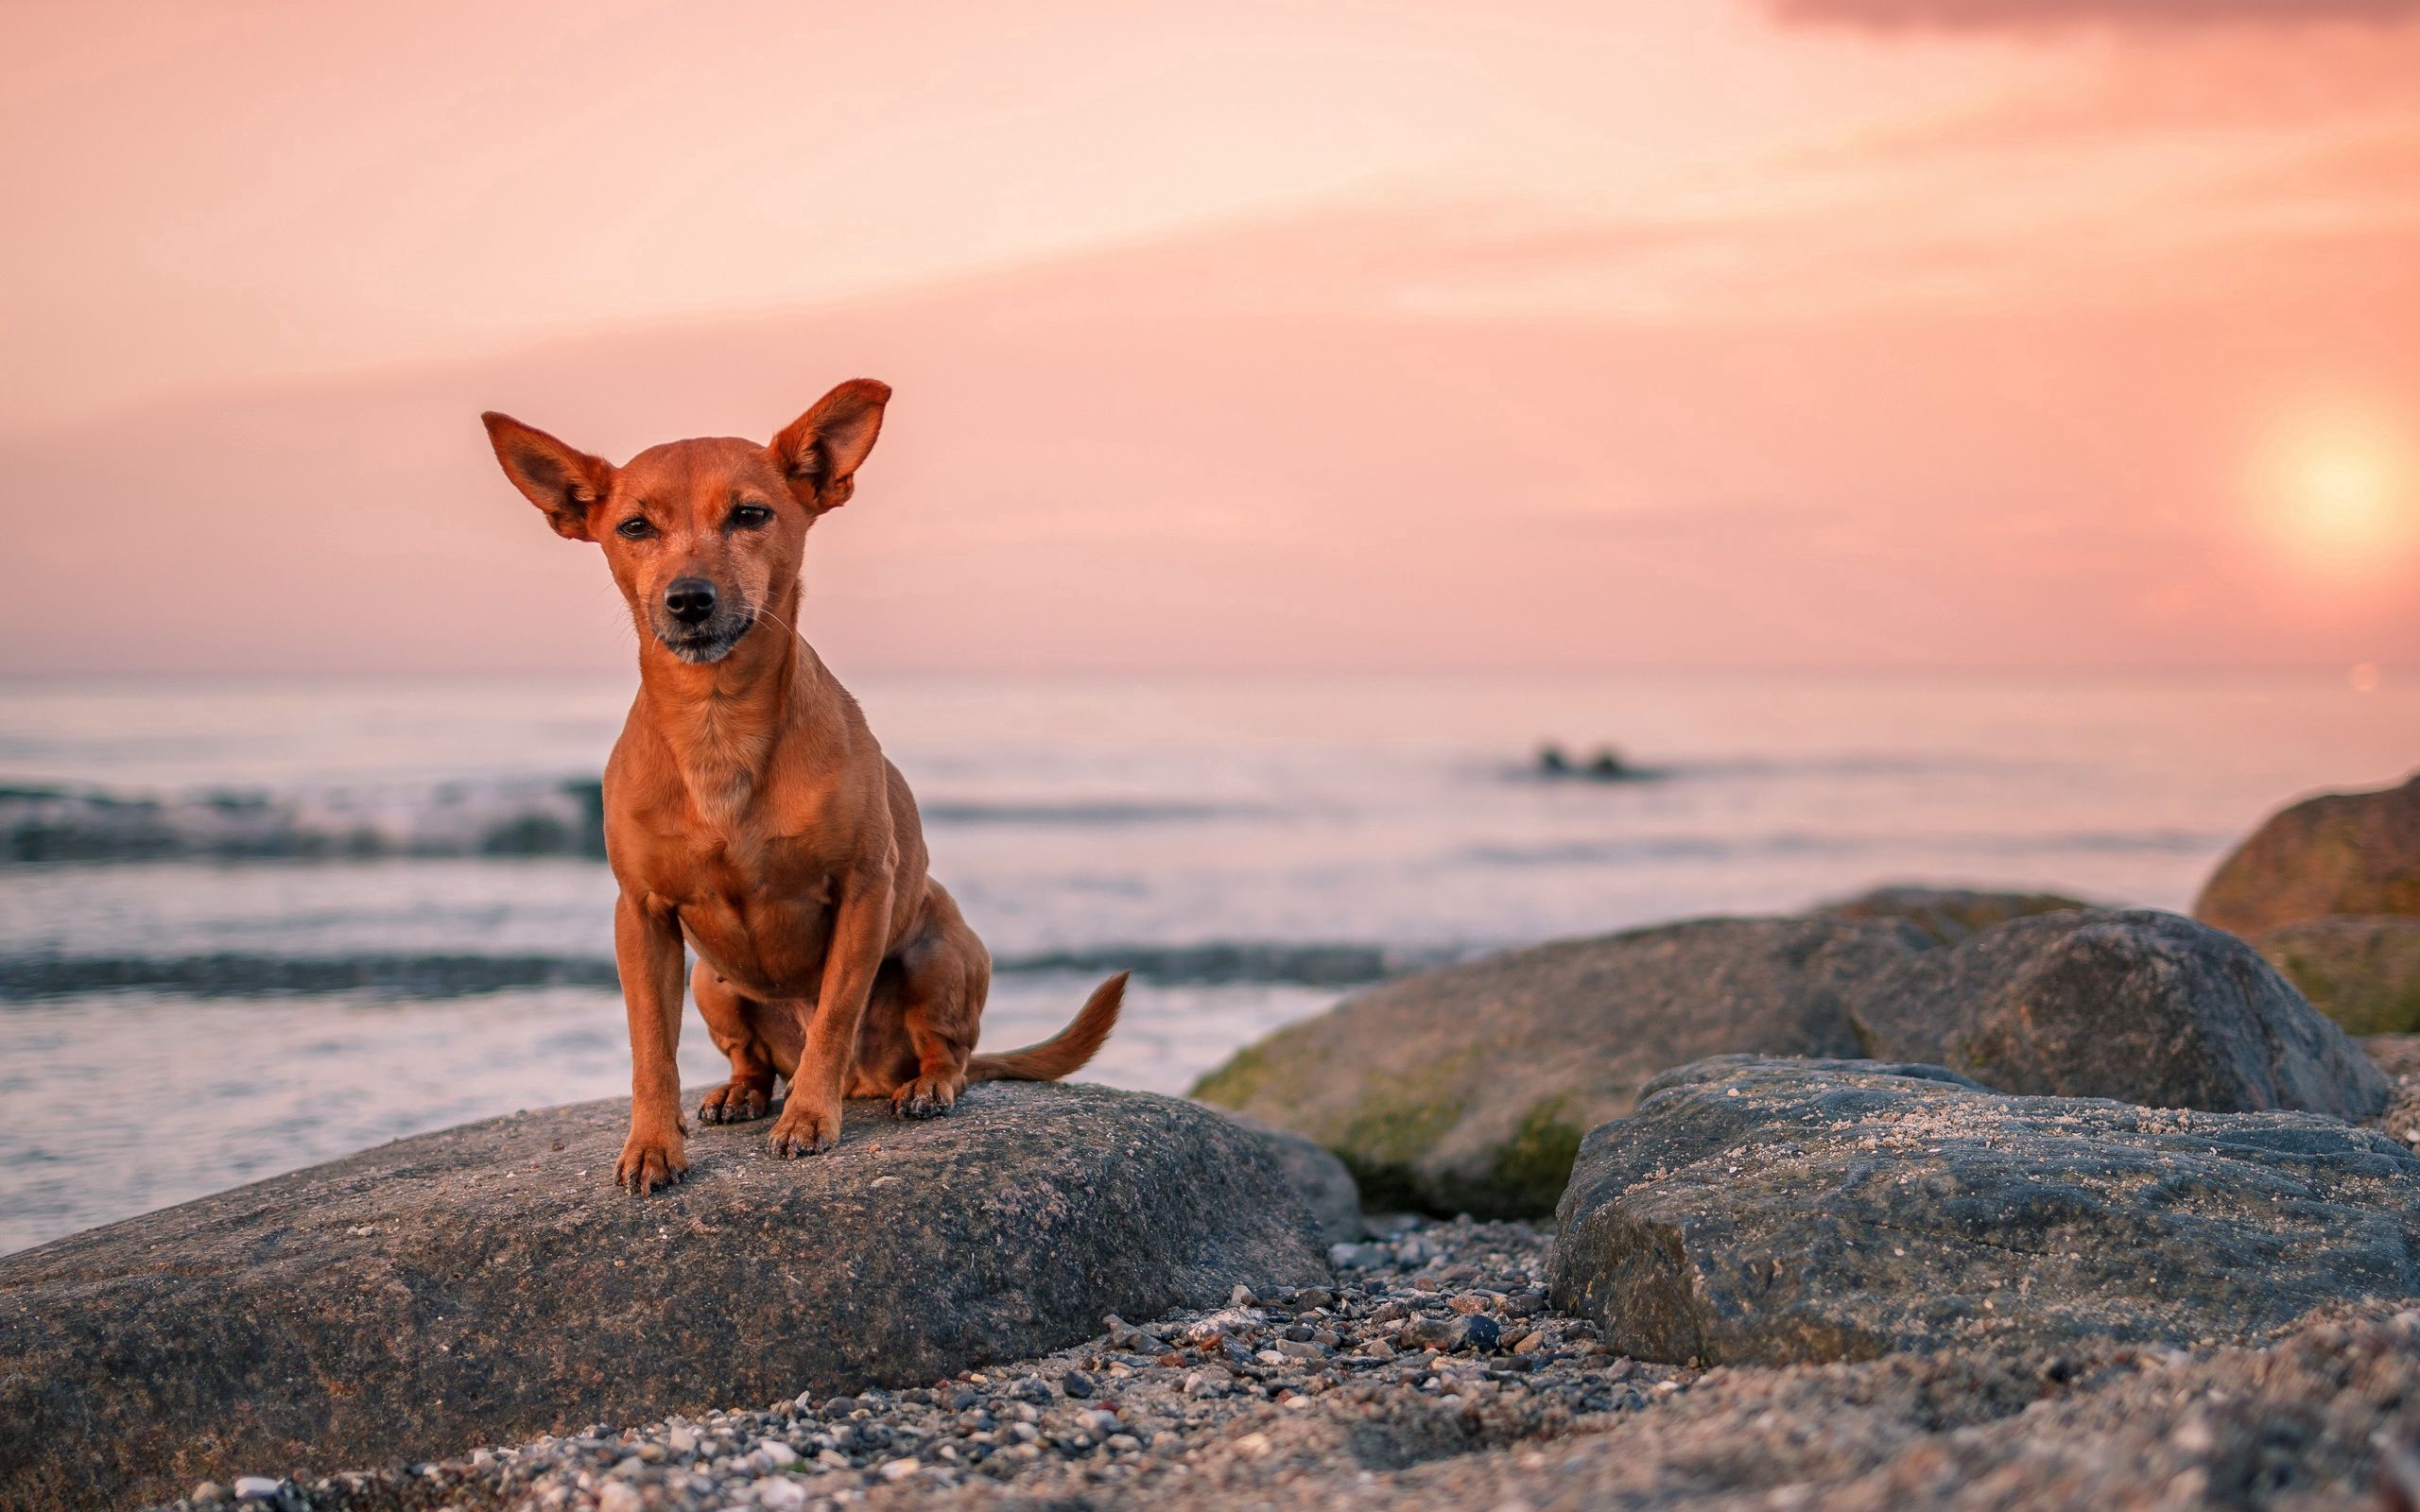 65029 download wallpaper Animals, Dog, Puppy, Rock, Stone, Sea screensavers and pictures for free